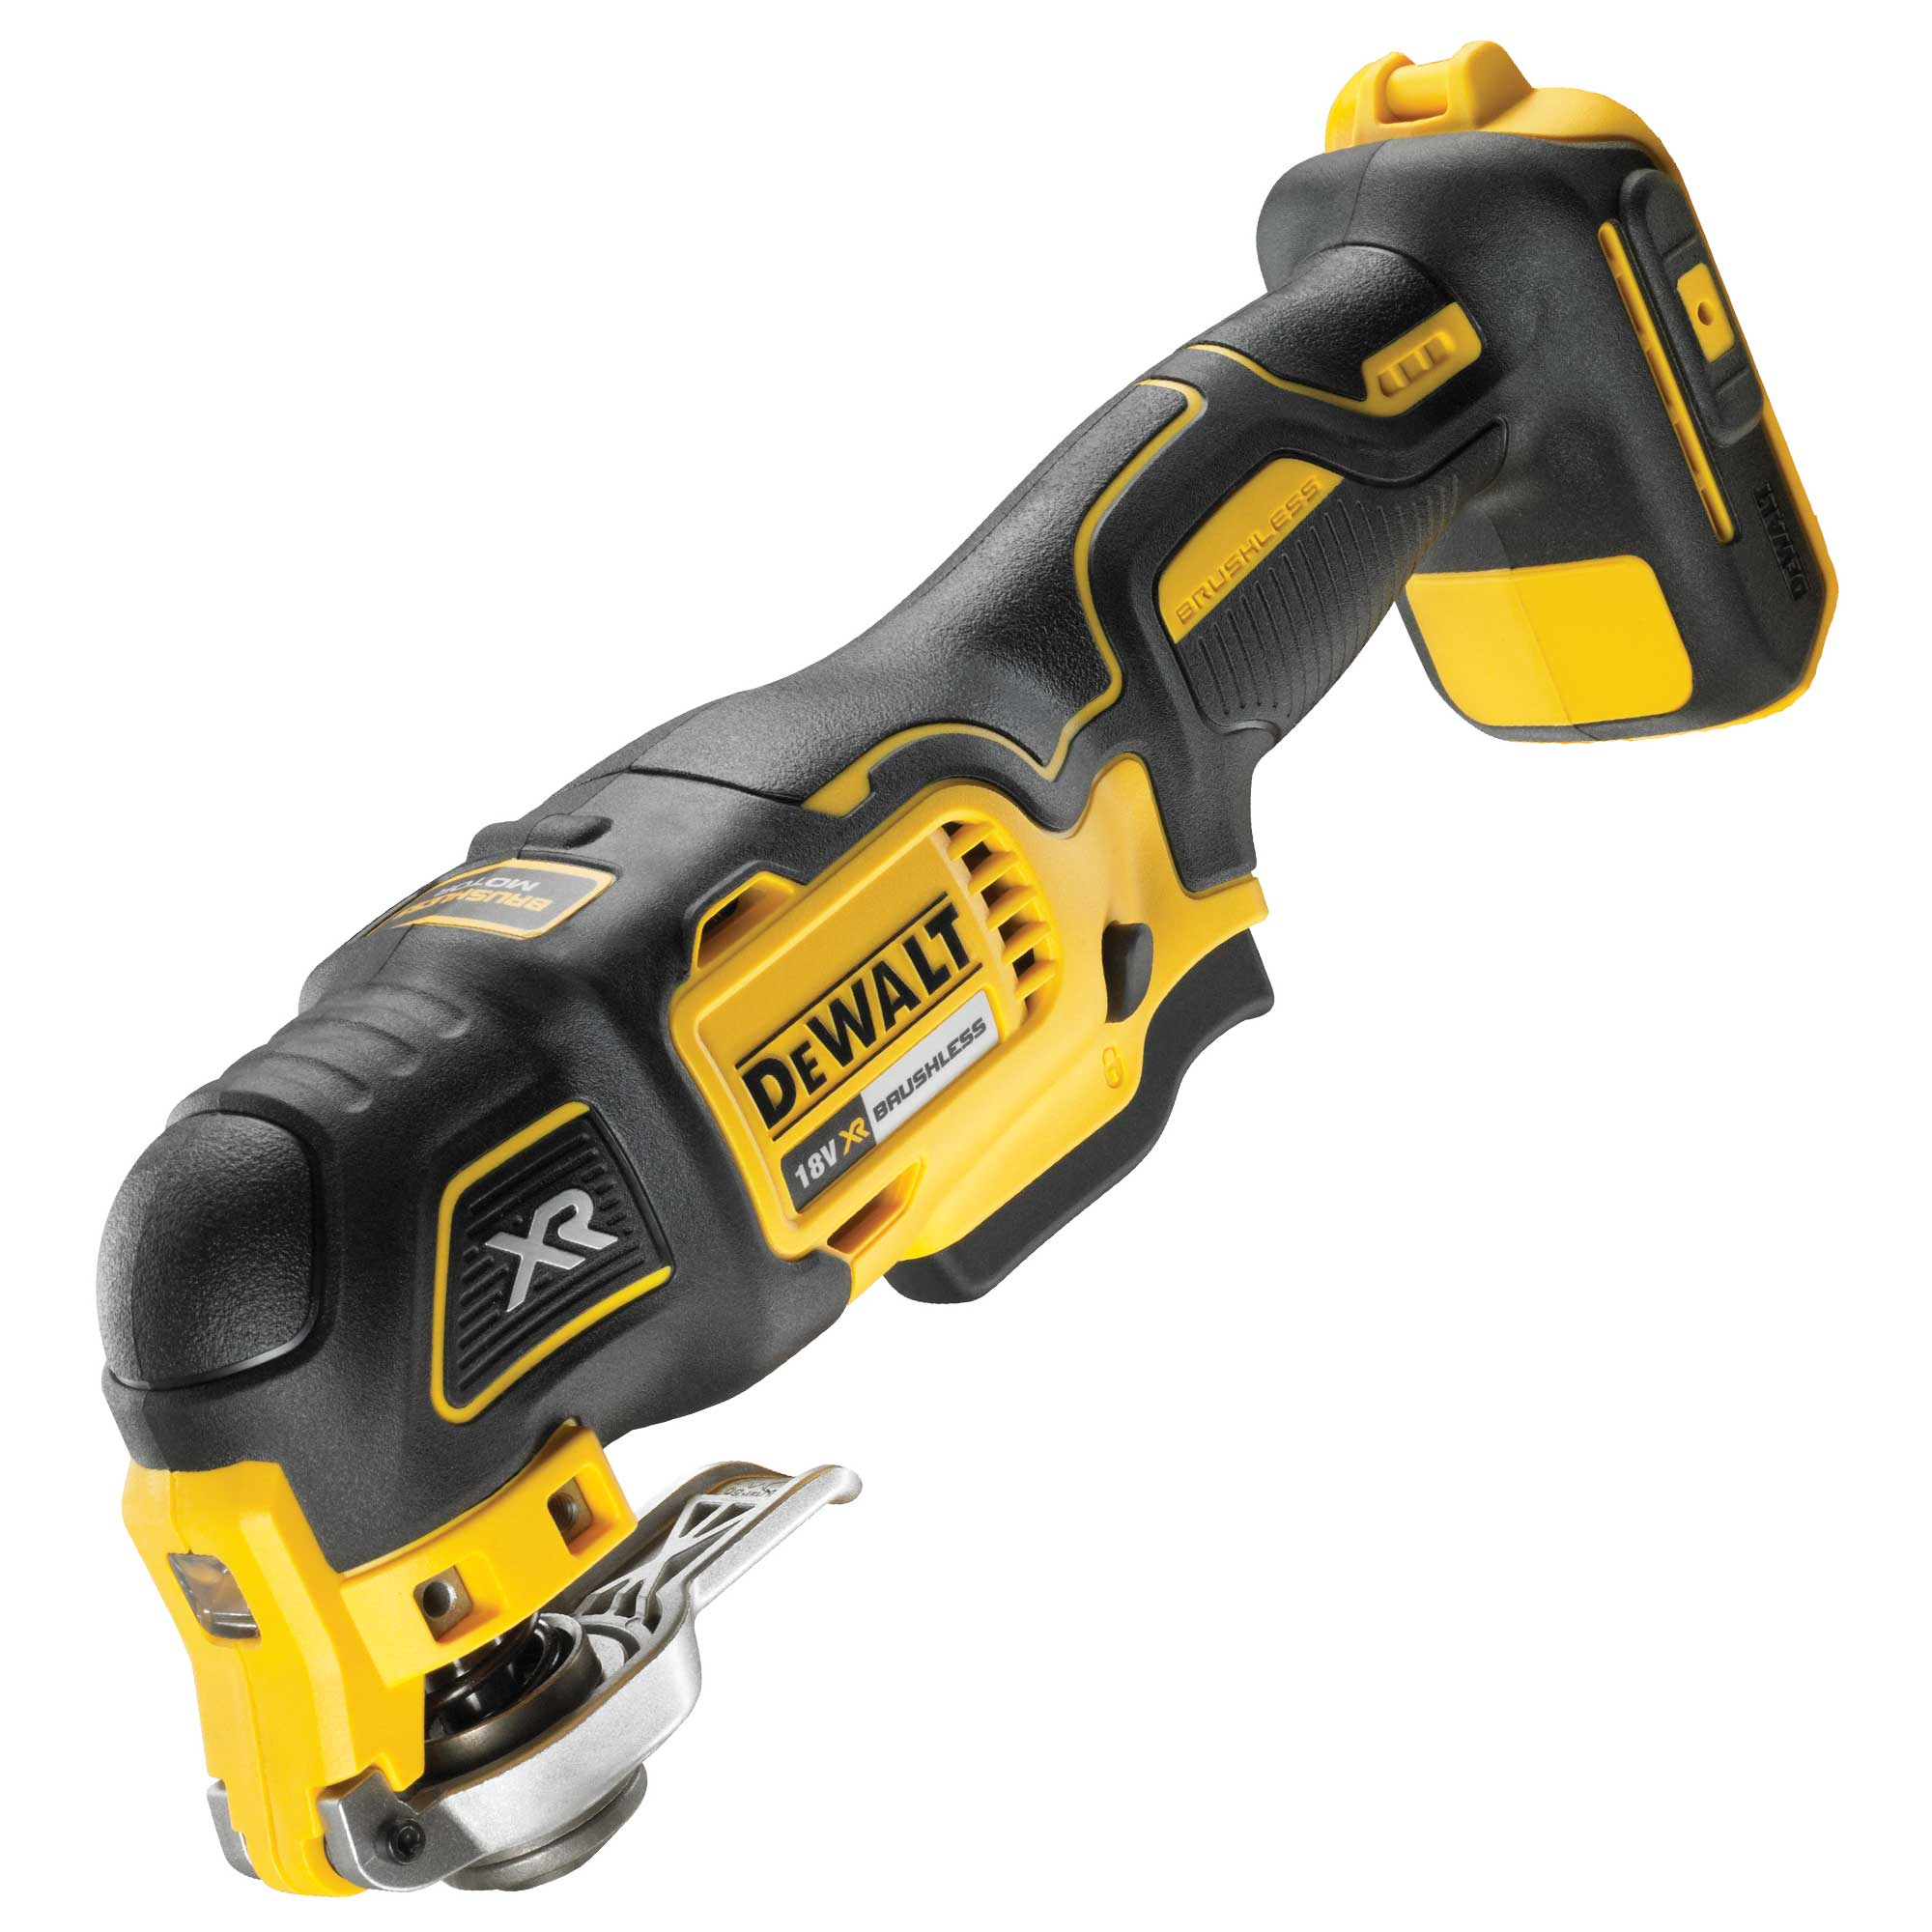 dewalt dcs355pk 18v xr li ion brushless oscillating multi tool. Black Bedroom Furniture Sets. Home Design Ideas